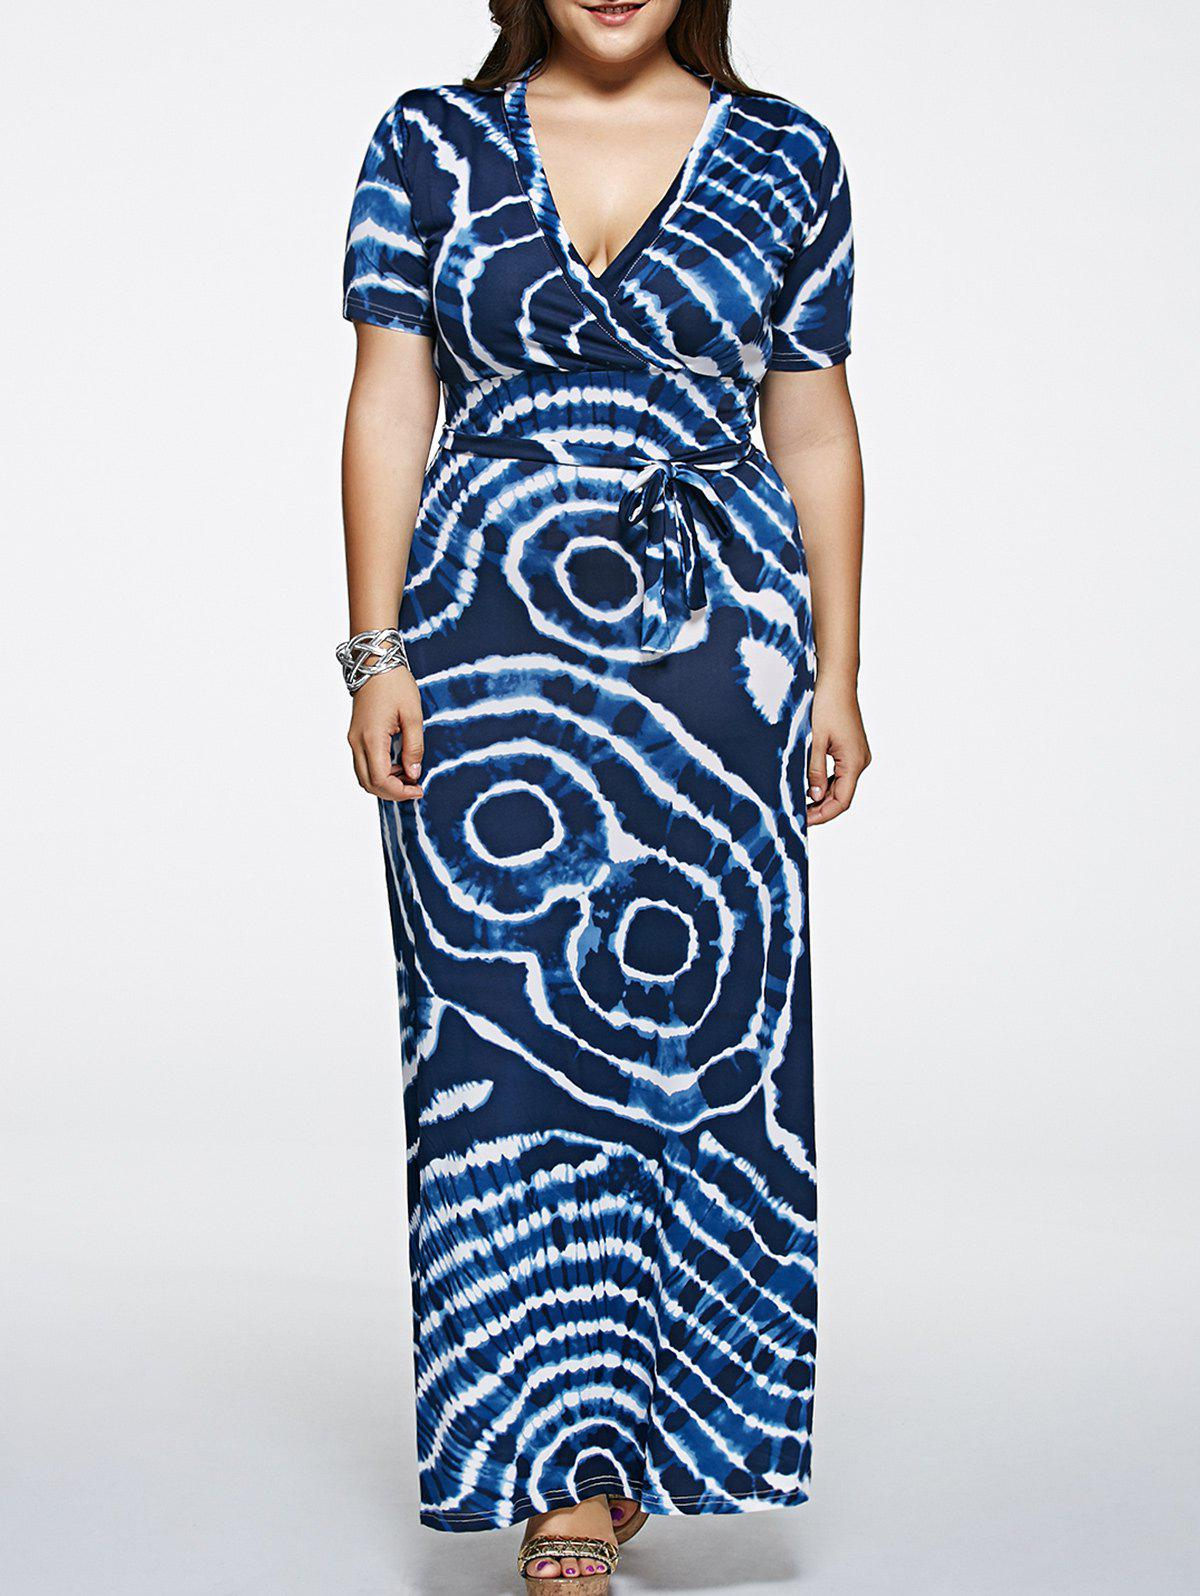 27abe2814063 60% OFF] Short Sleeve Plus Size Tie-Dyed Maxi Dress | Rosegal